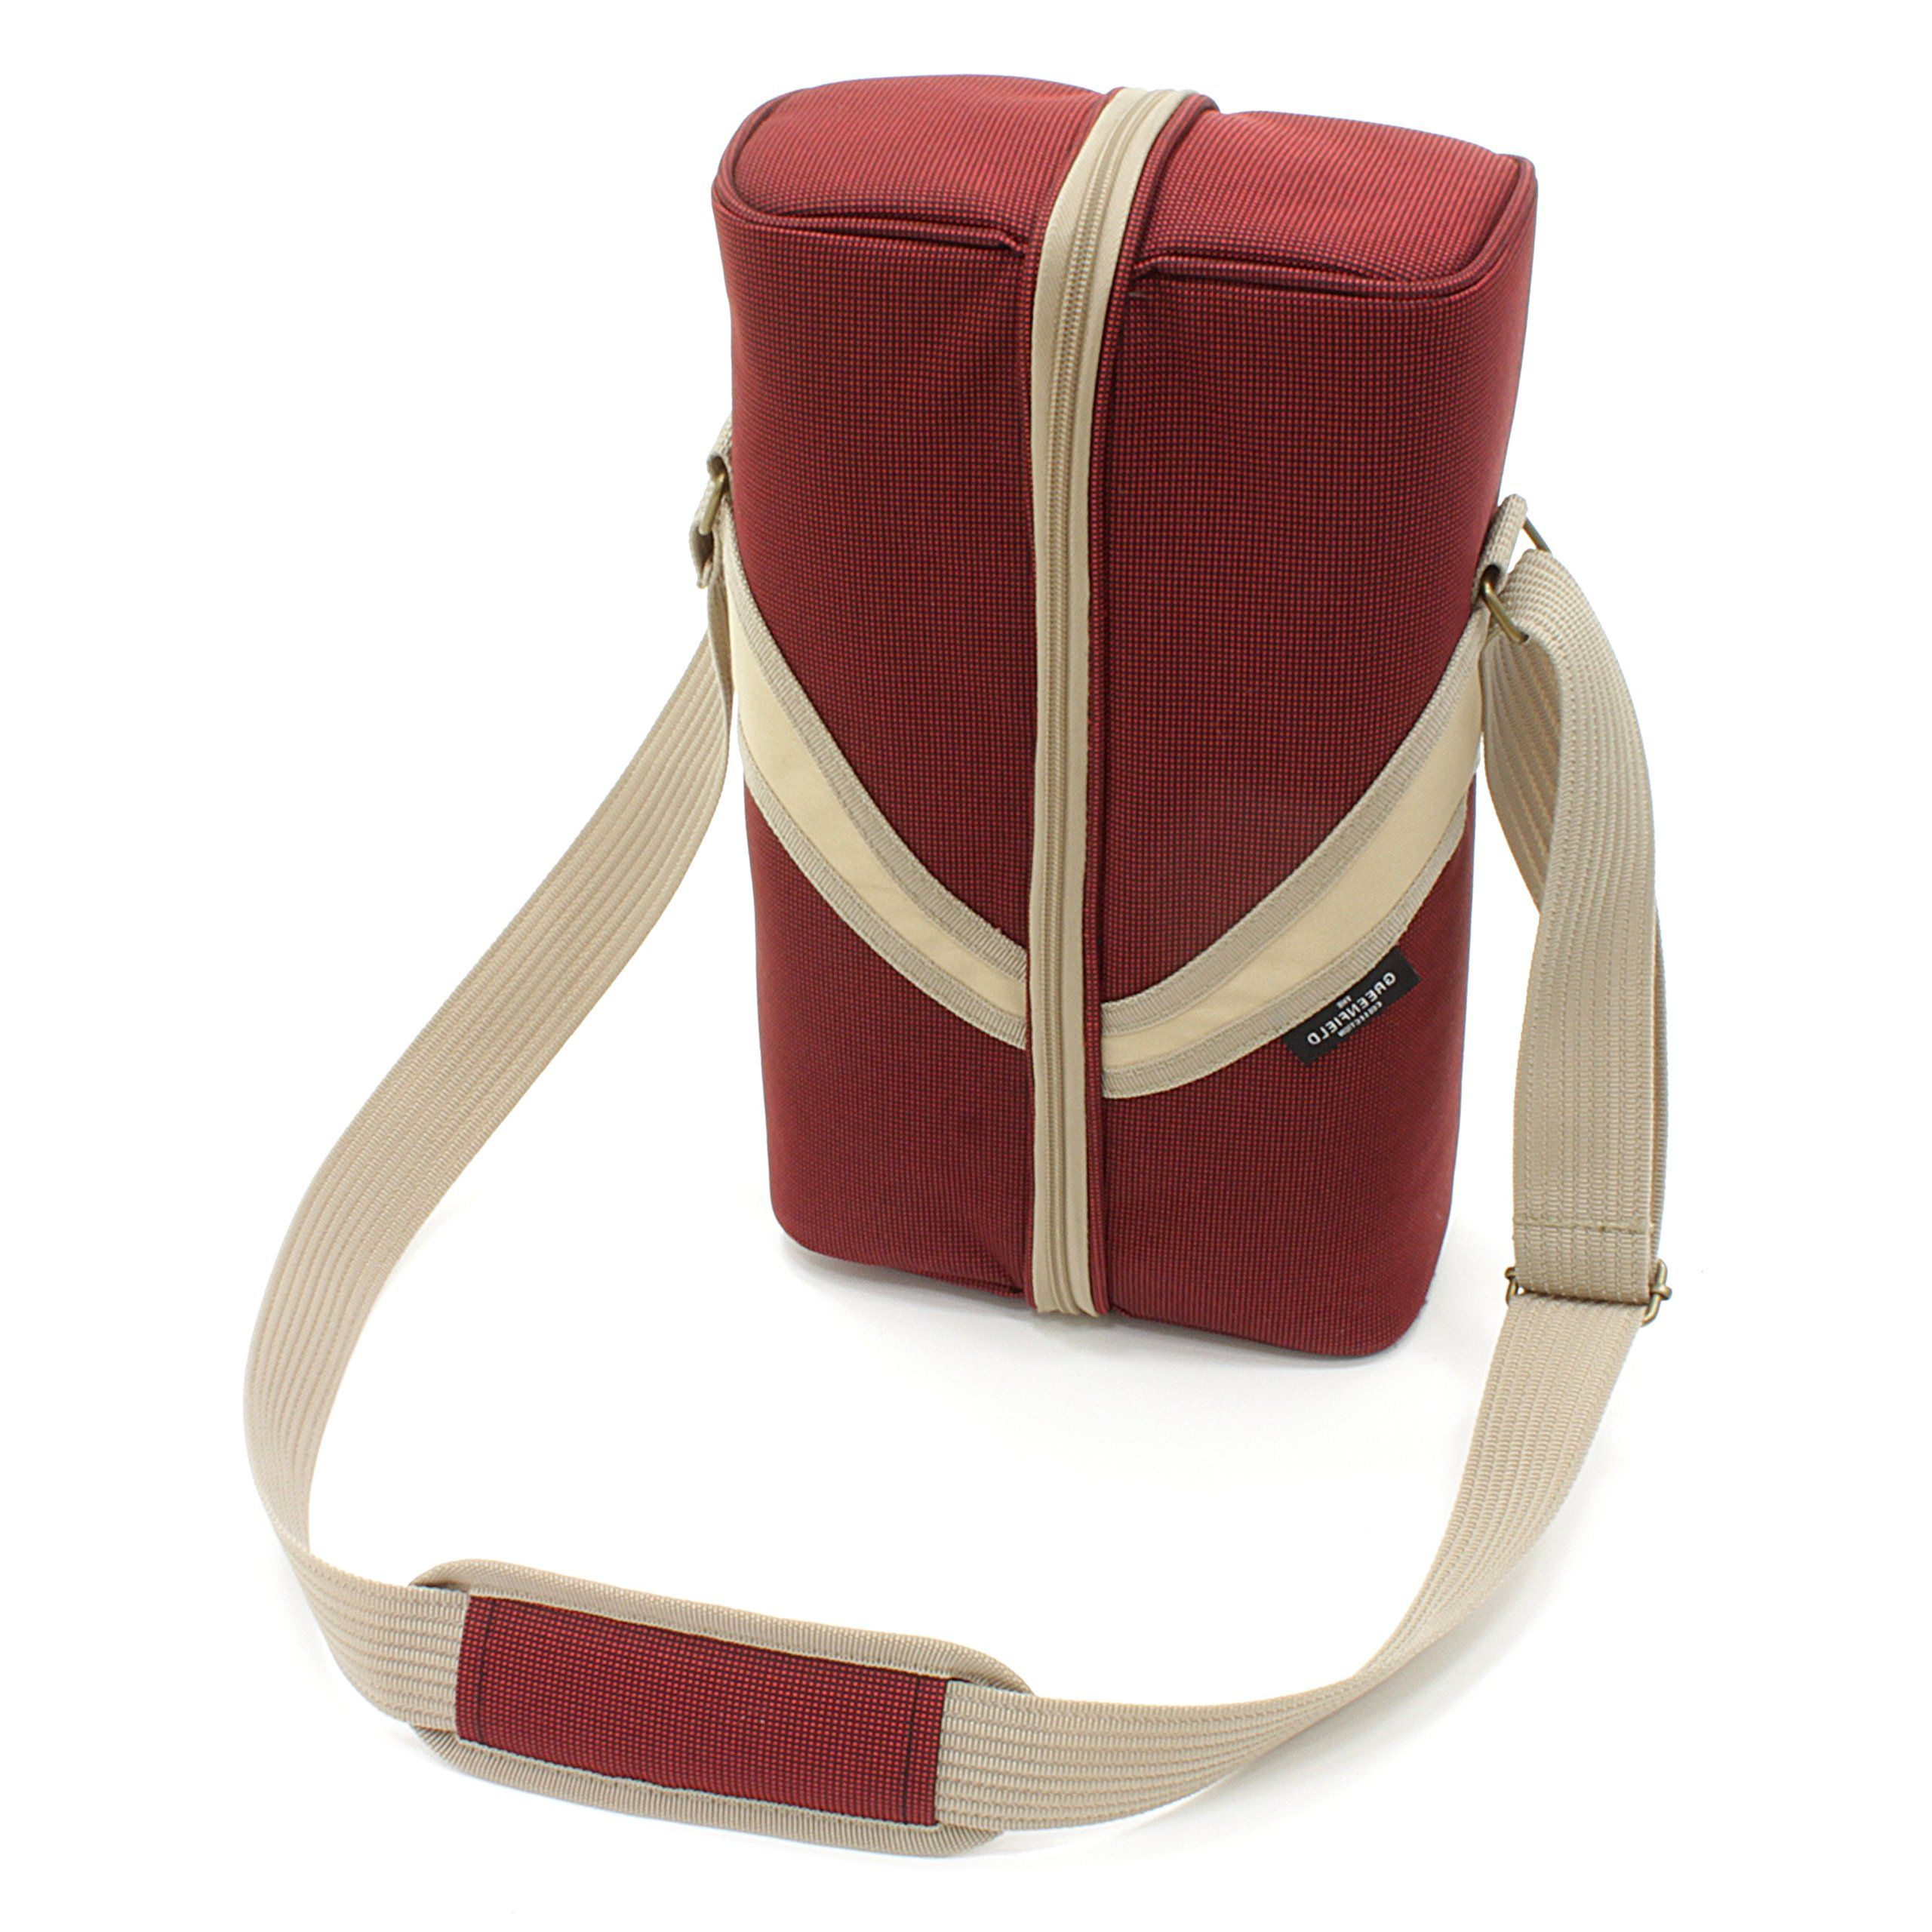 Greenfield Collection Deluxe Mulberry Red Wine Cooler Bag For Two People Want To Know More Click On The Image This Is An In 2020 Red Wine Cooler Cooler Bag Bags